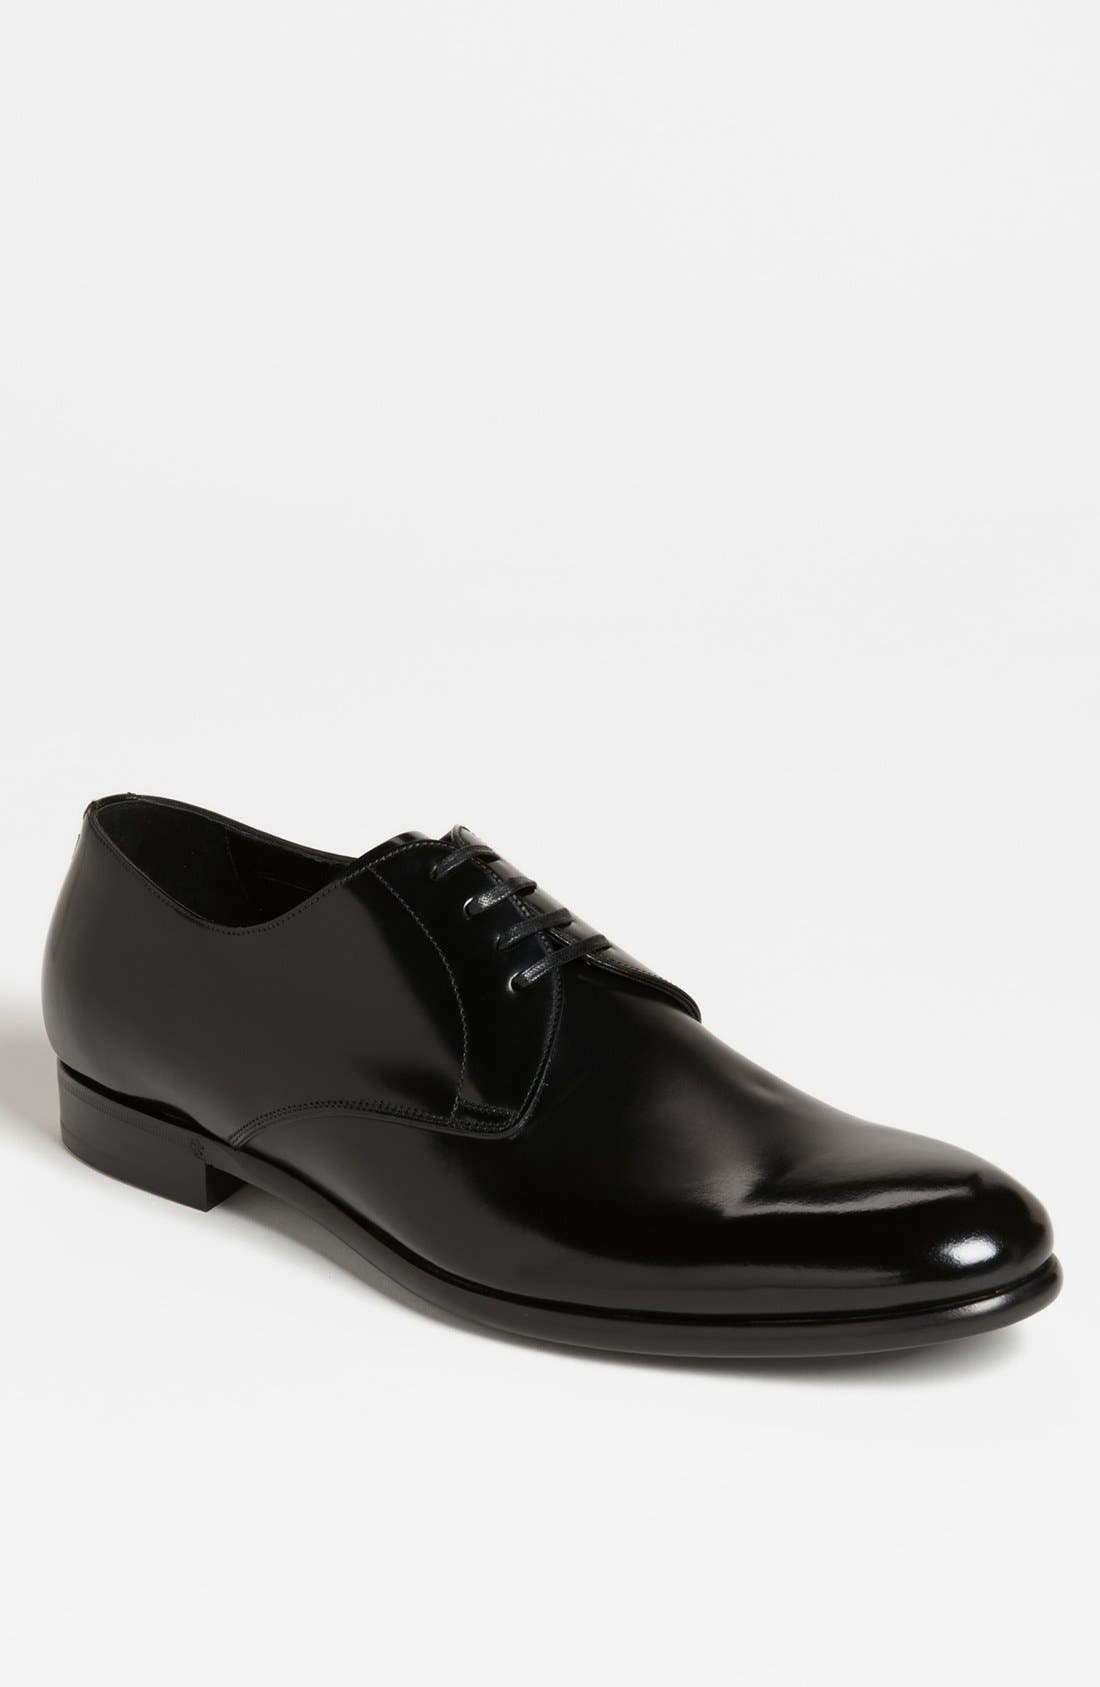 Alternate Image 1 Selected - Dolce&Gabbana 'Napoli' Plain Toe Derby